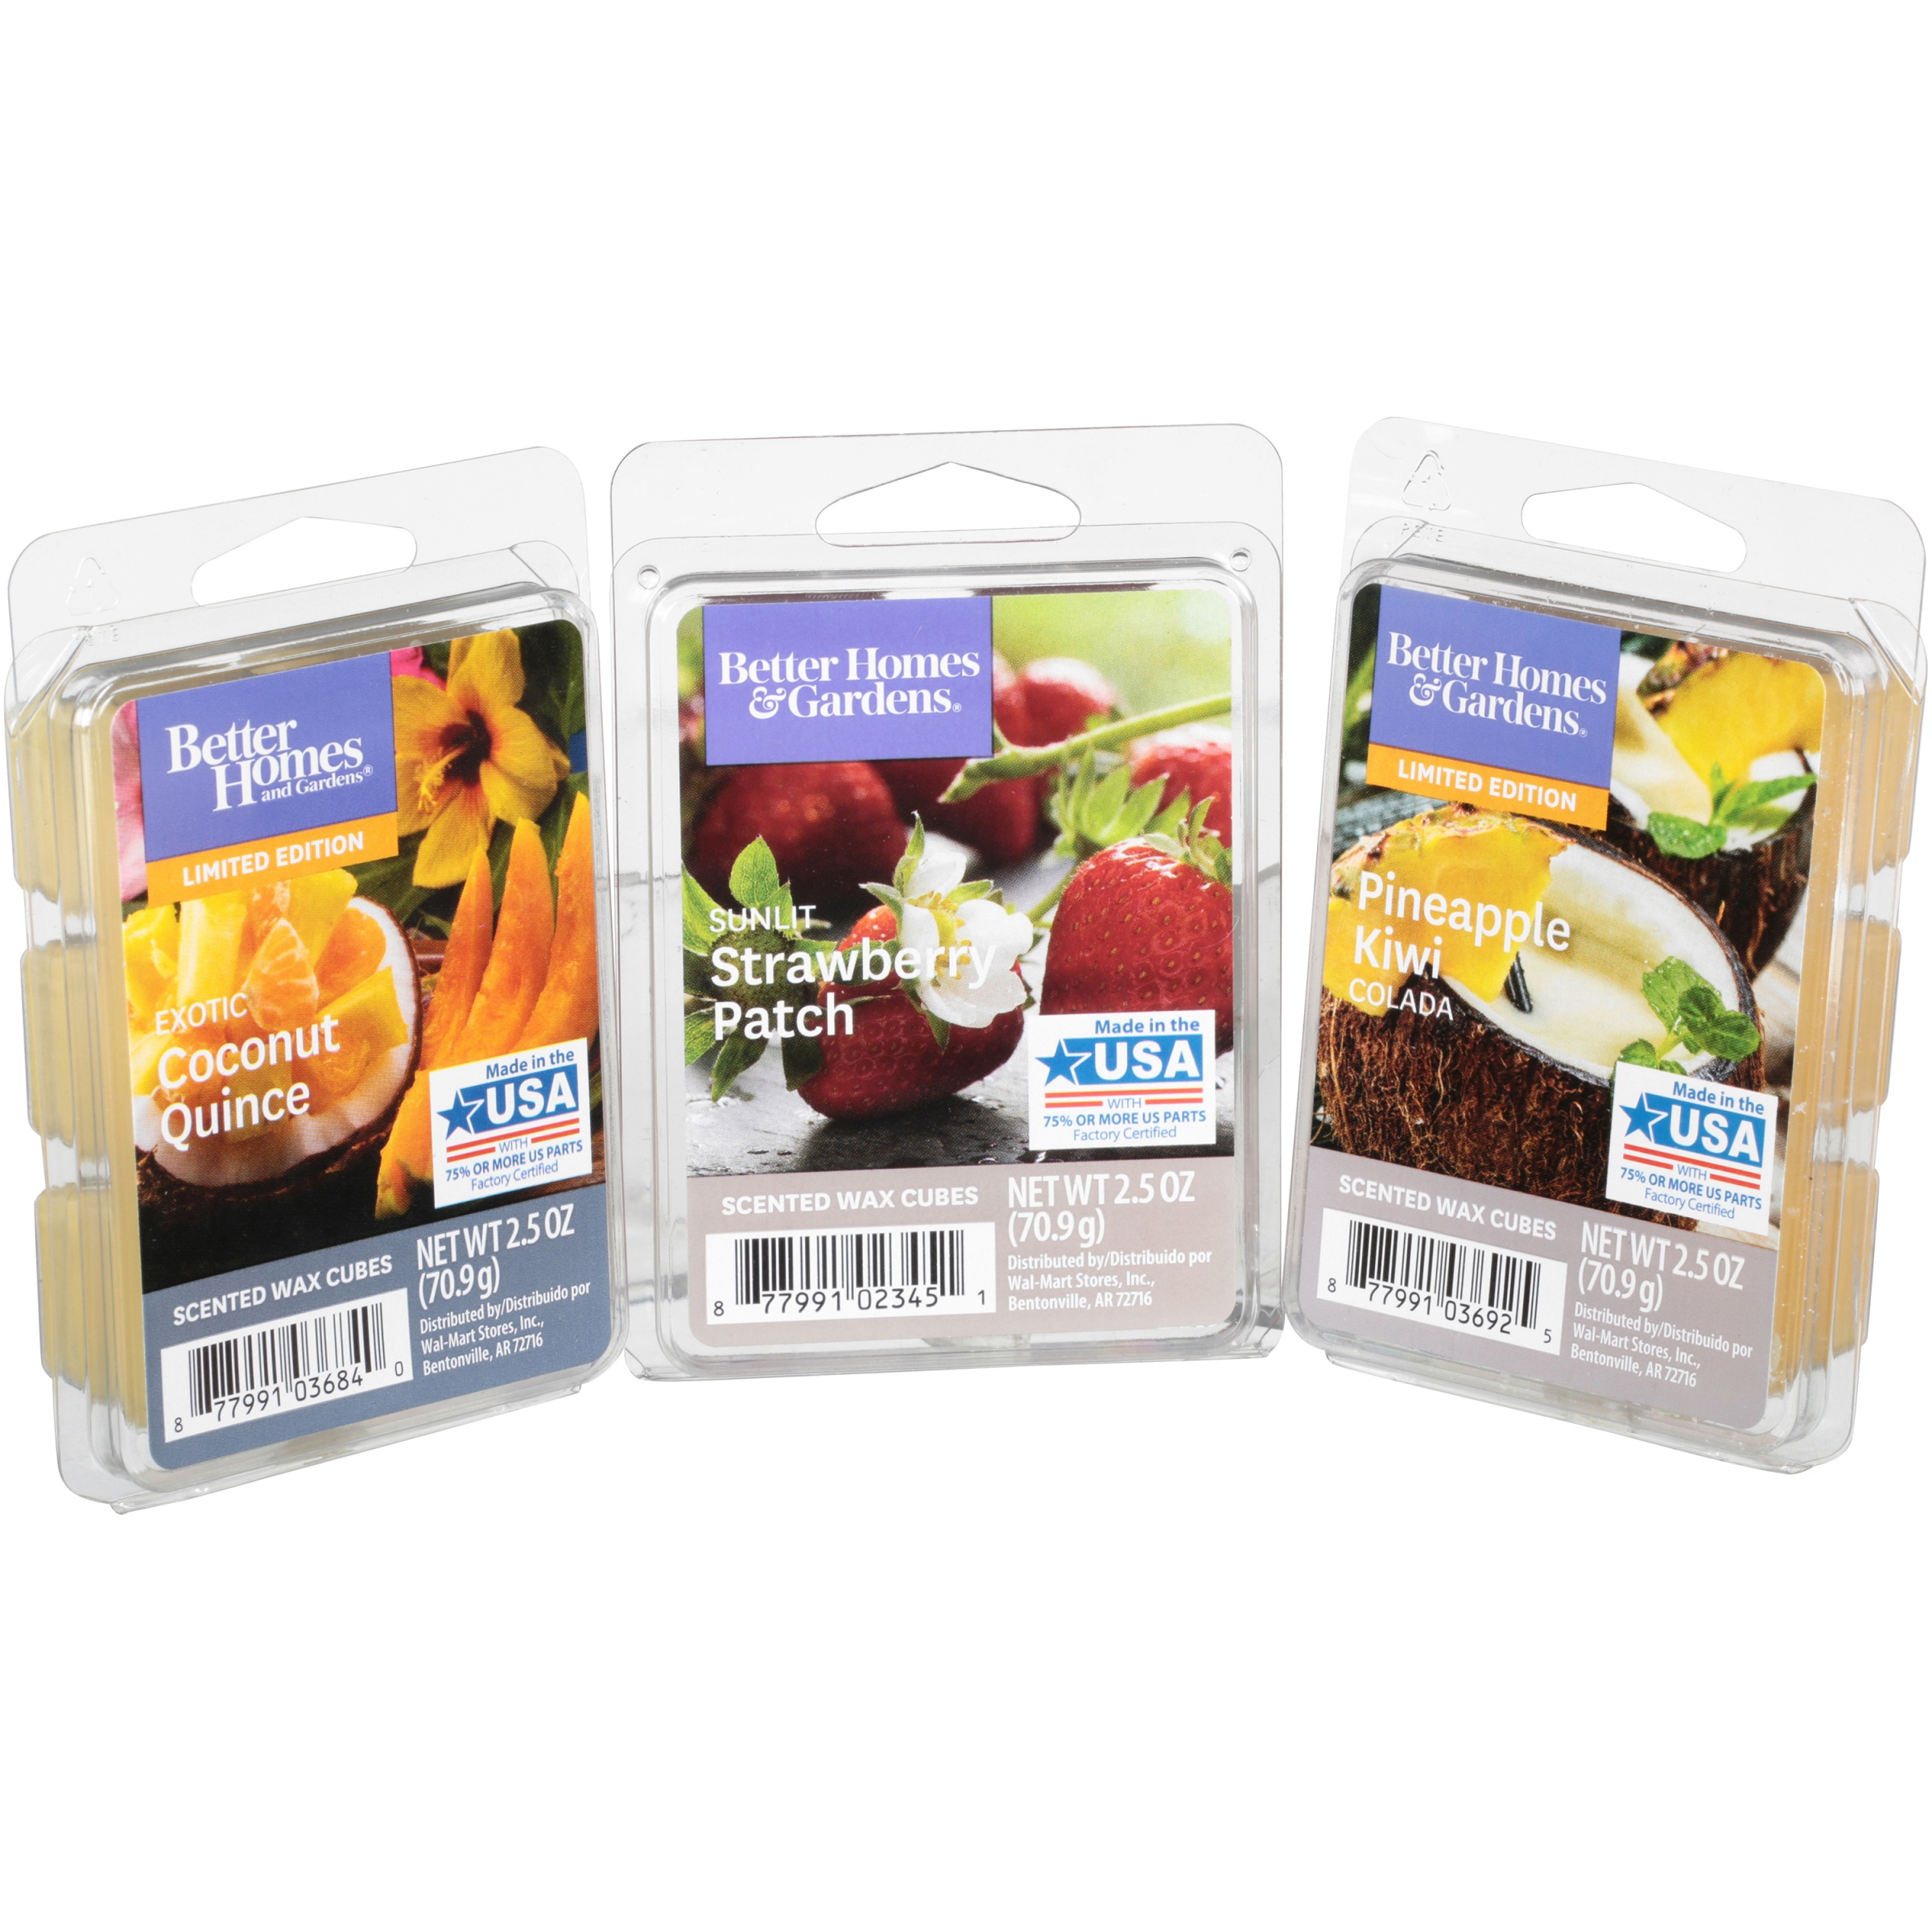 Better Homes & Gardens® Touch of Fruit Scented Wax Cubes Variety Pack 10 ct Box